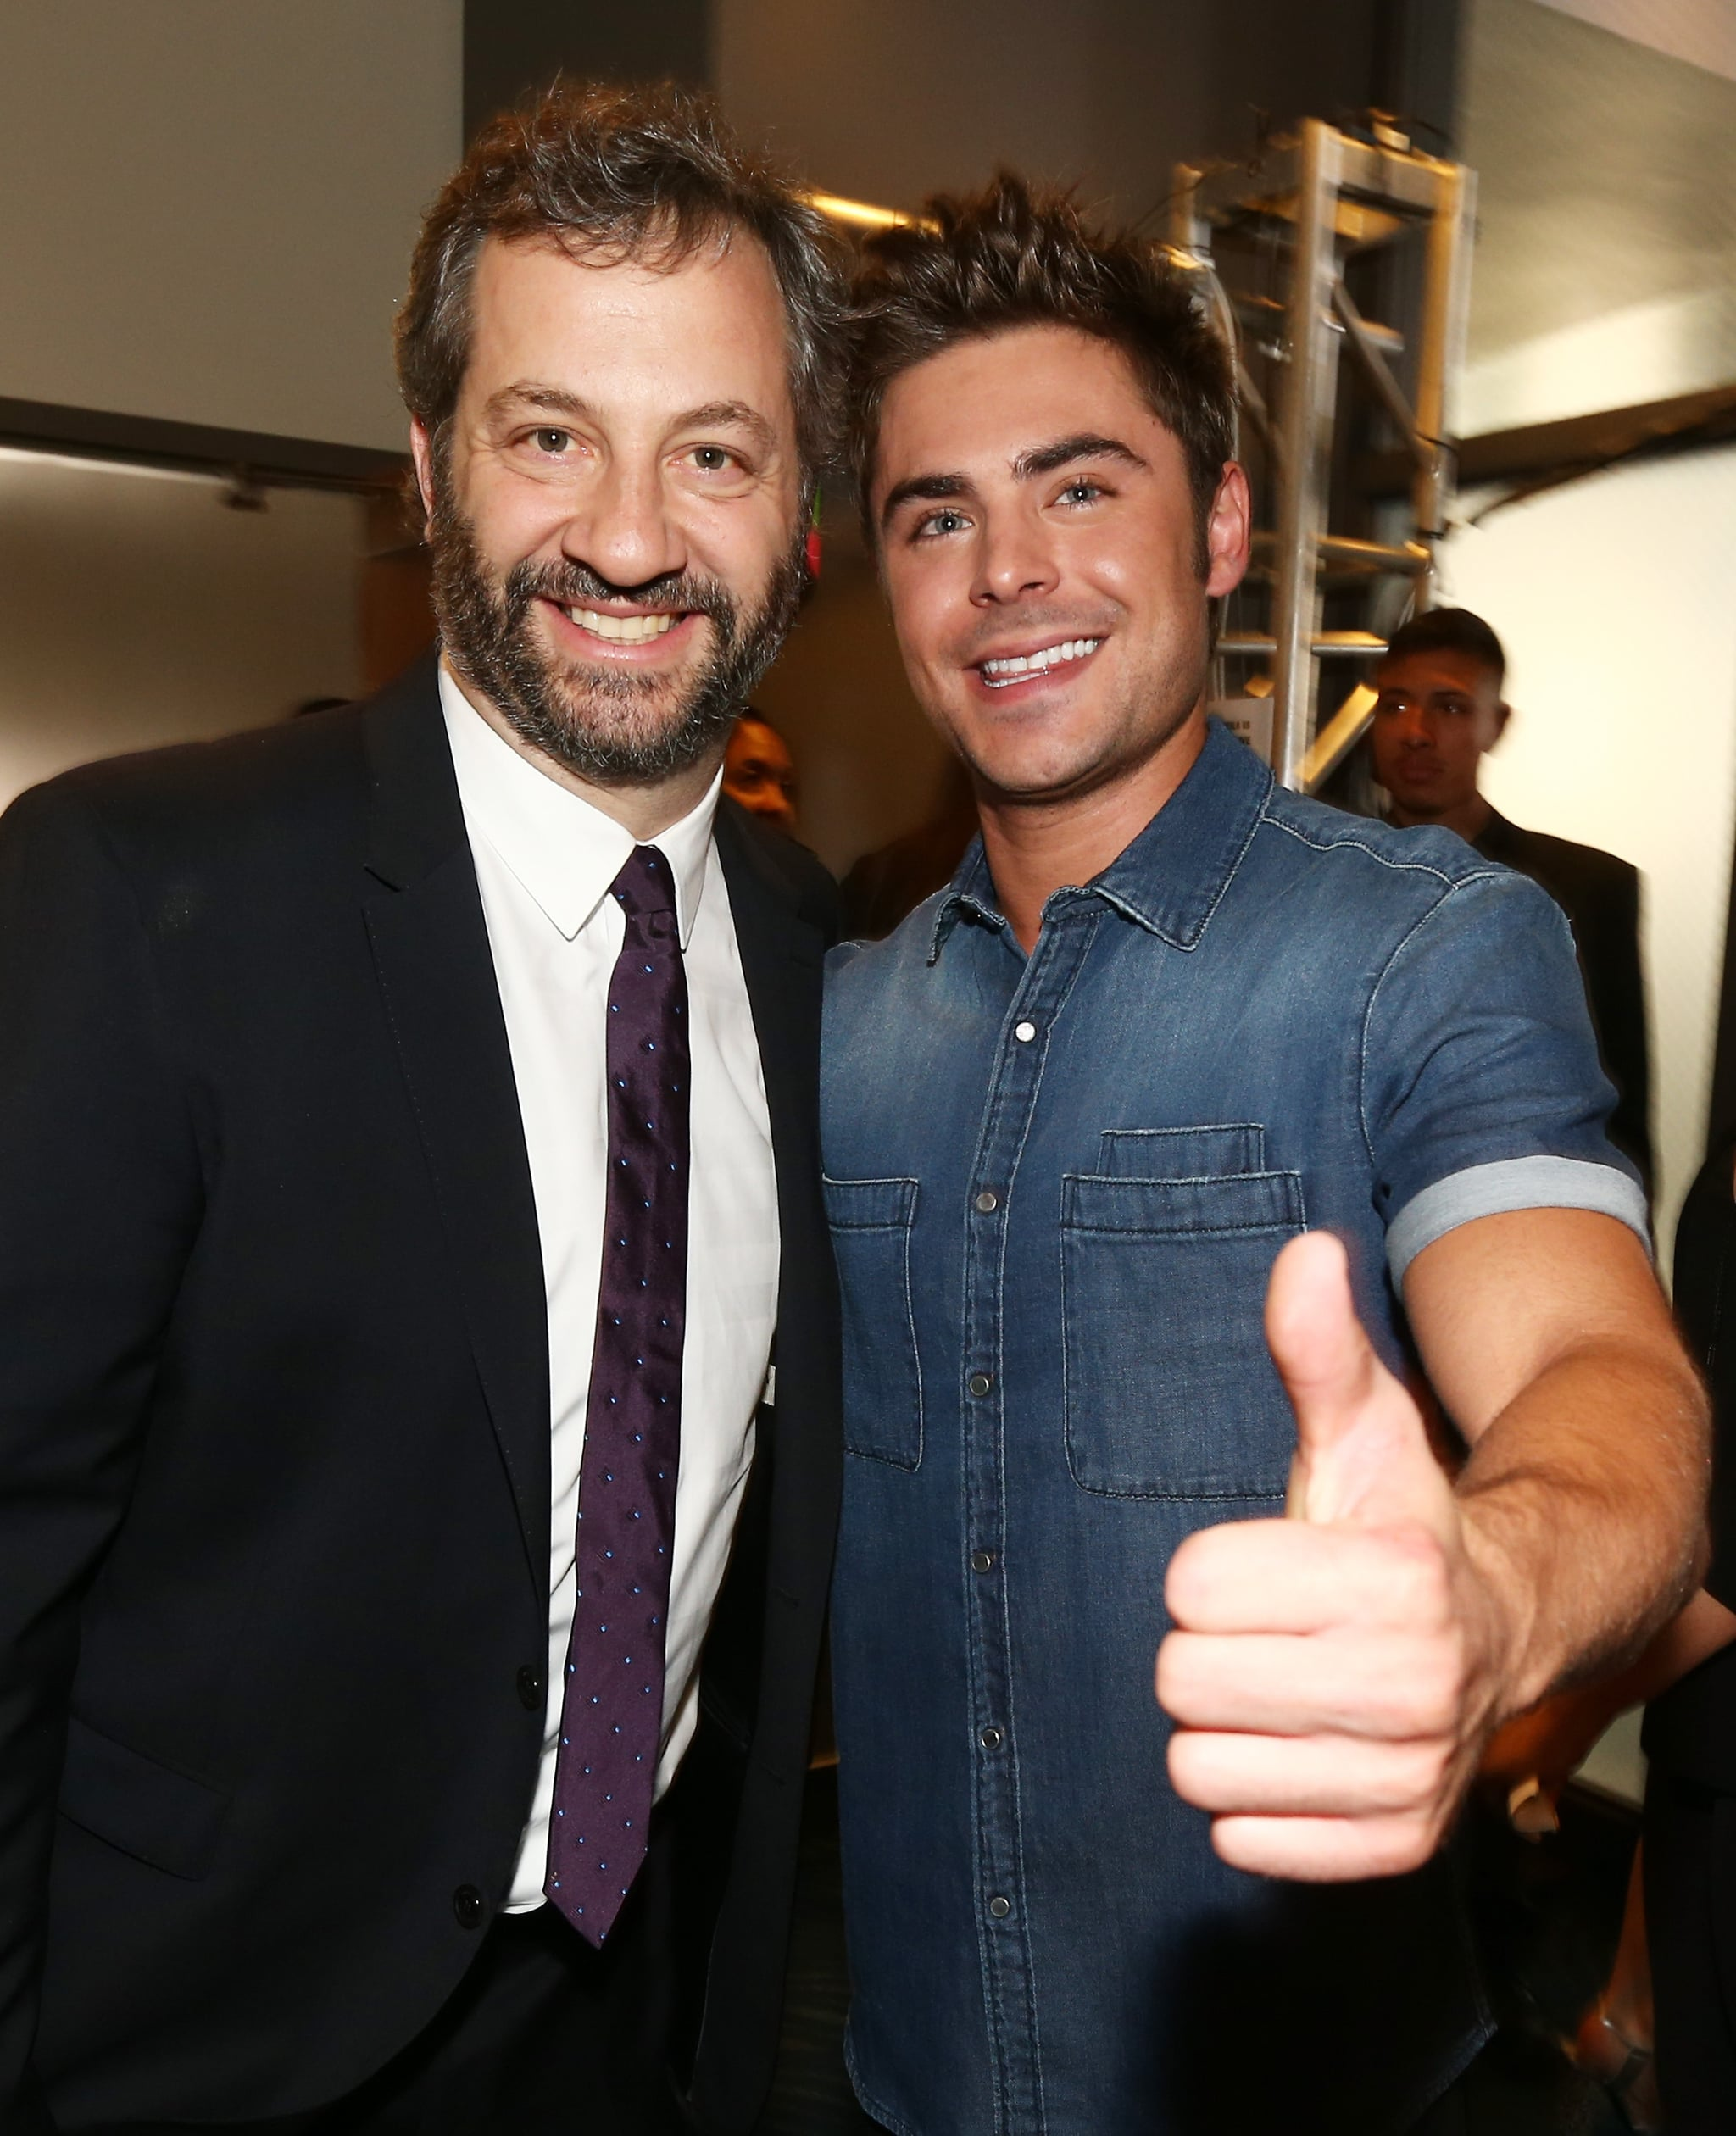 Judd Apatow and Zac Efron met up backstage.